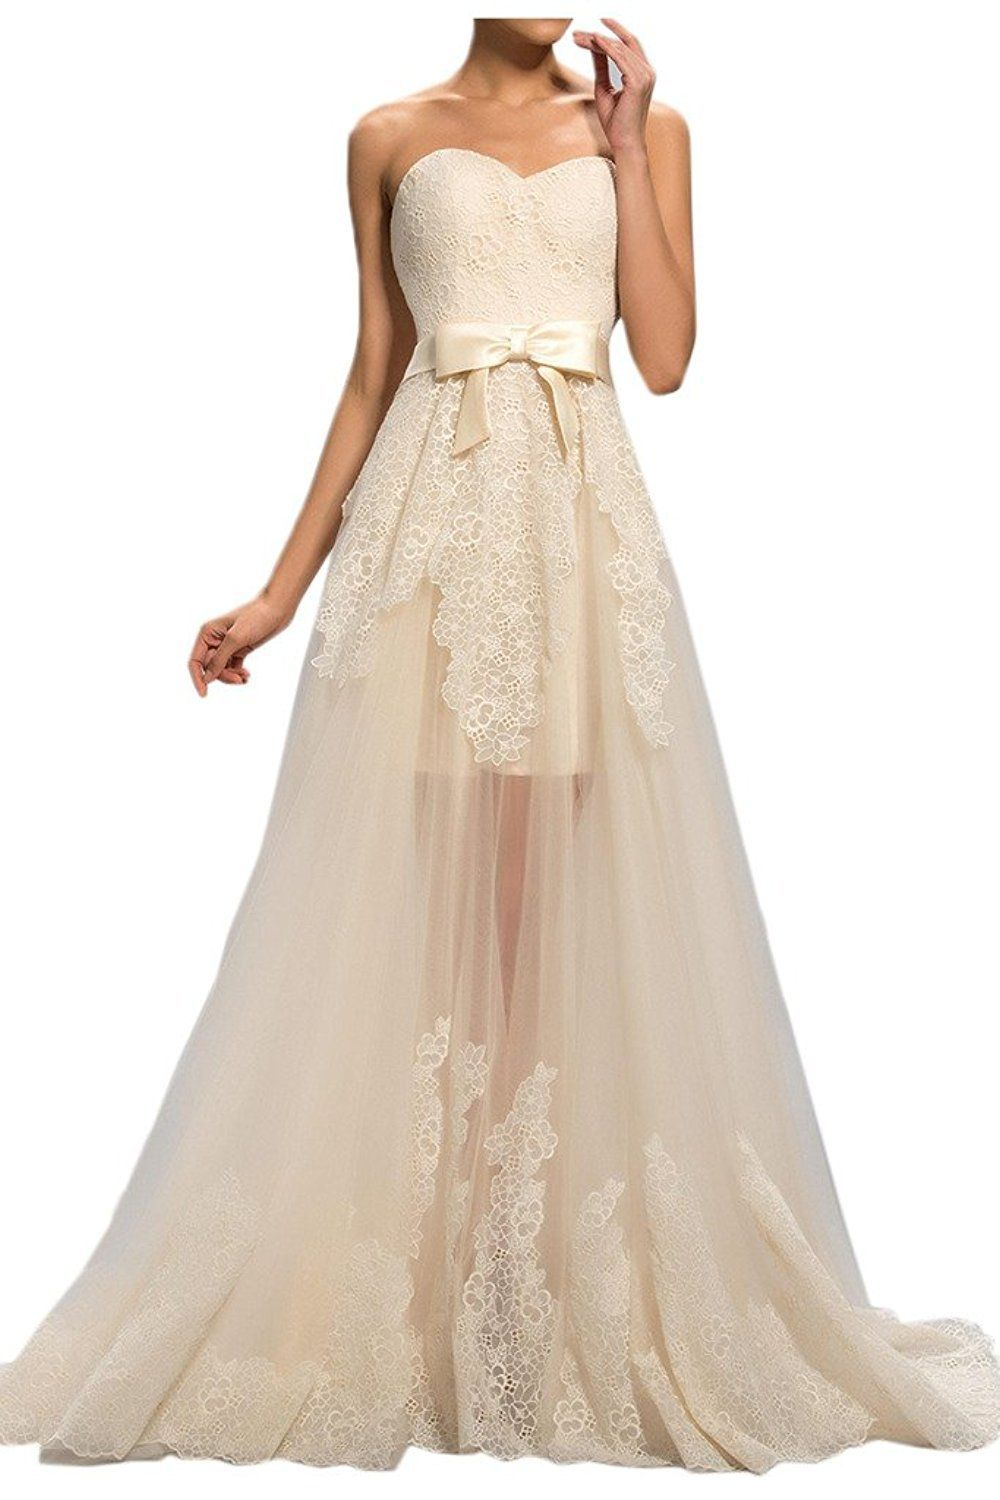 Mella womenus sweet beach wedding dresses for bride high low